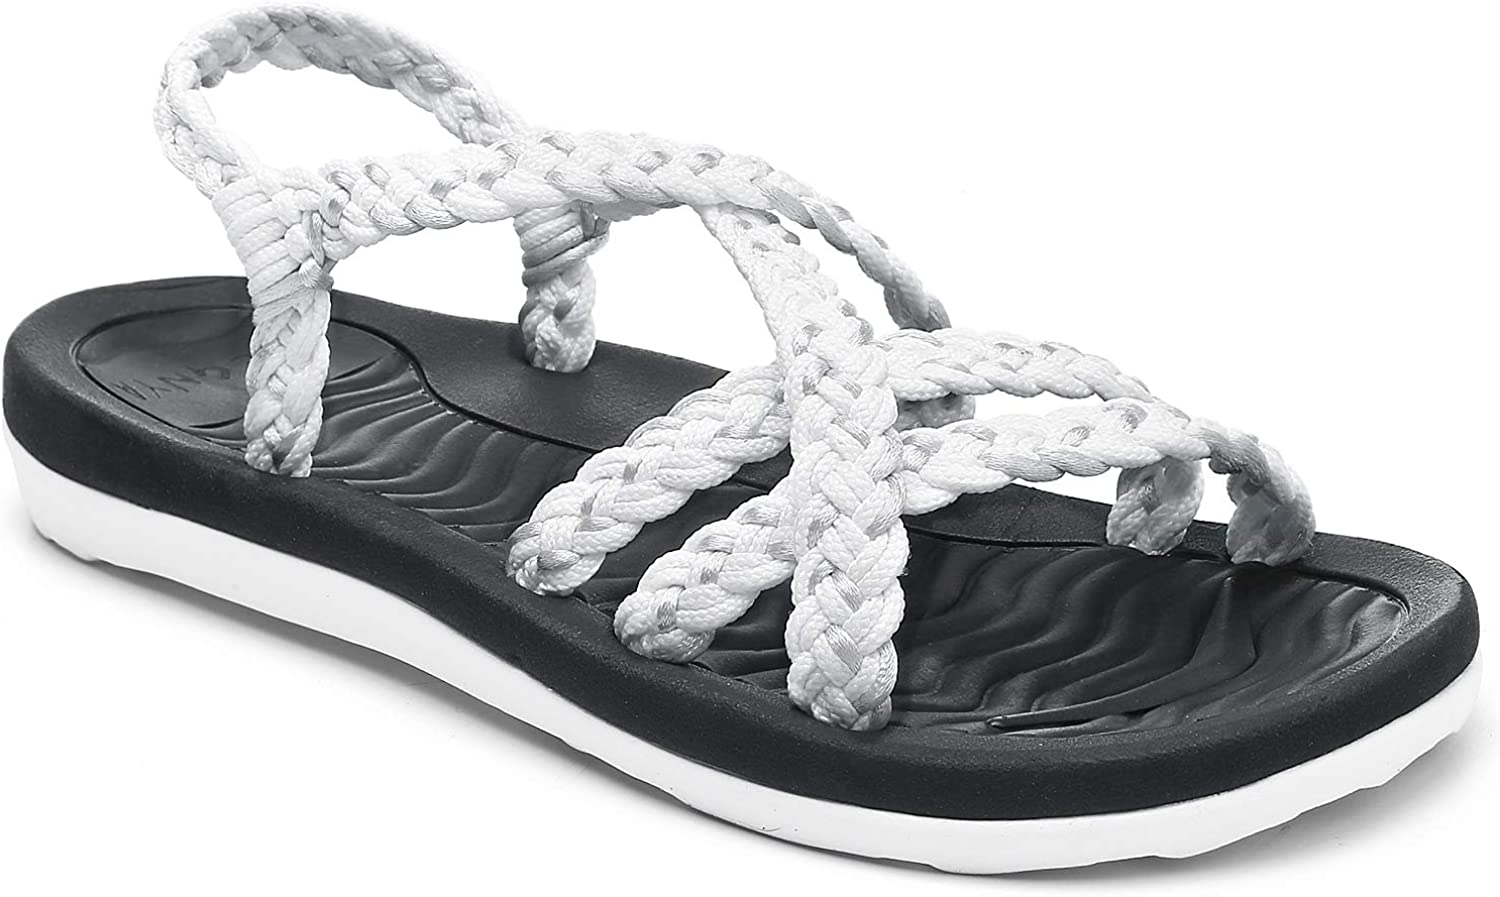 Women's Comfortable Walking Sandals with Arch Support, Athletic Hiking Sandals for women,Wadable Water Sandals for Spot/Beach/Poolside/Cruise/Travel/Wedding